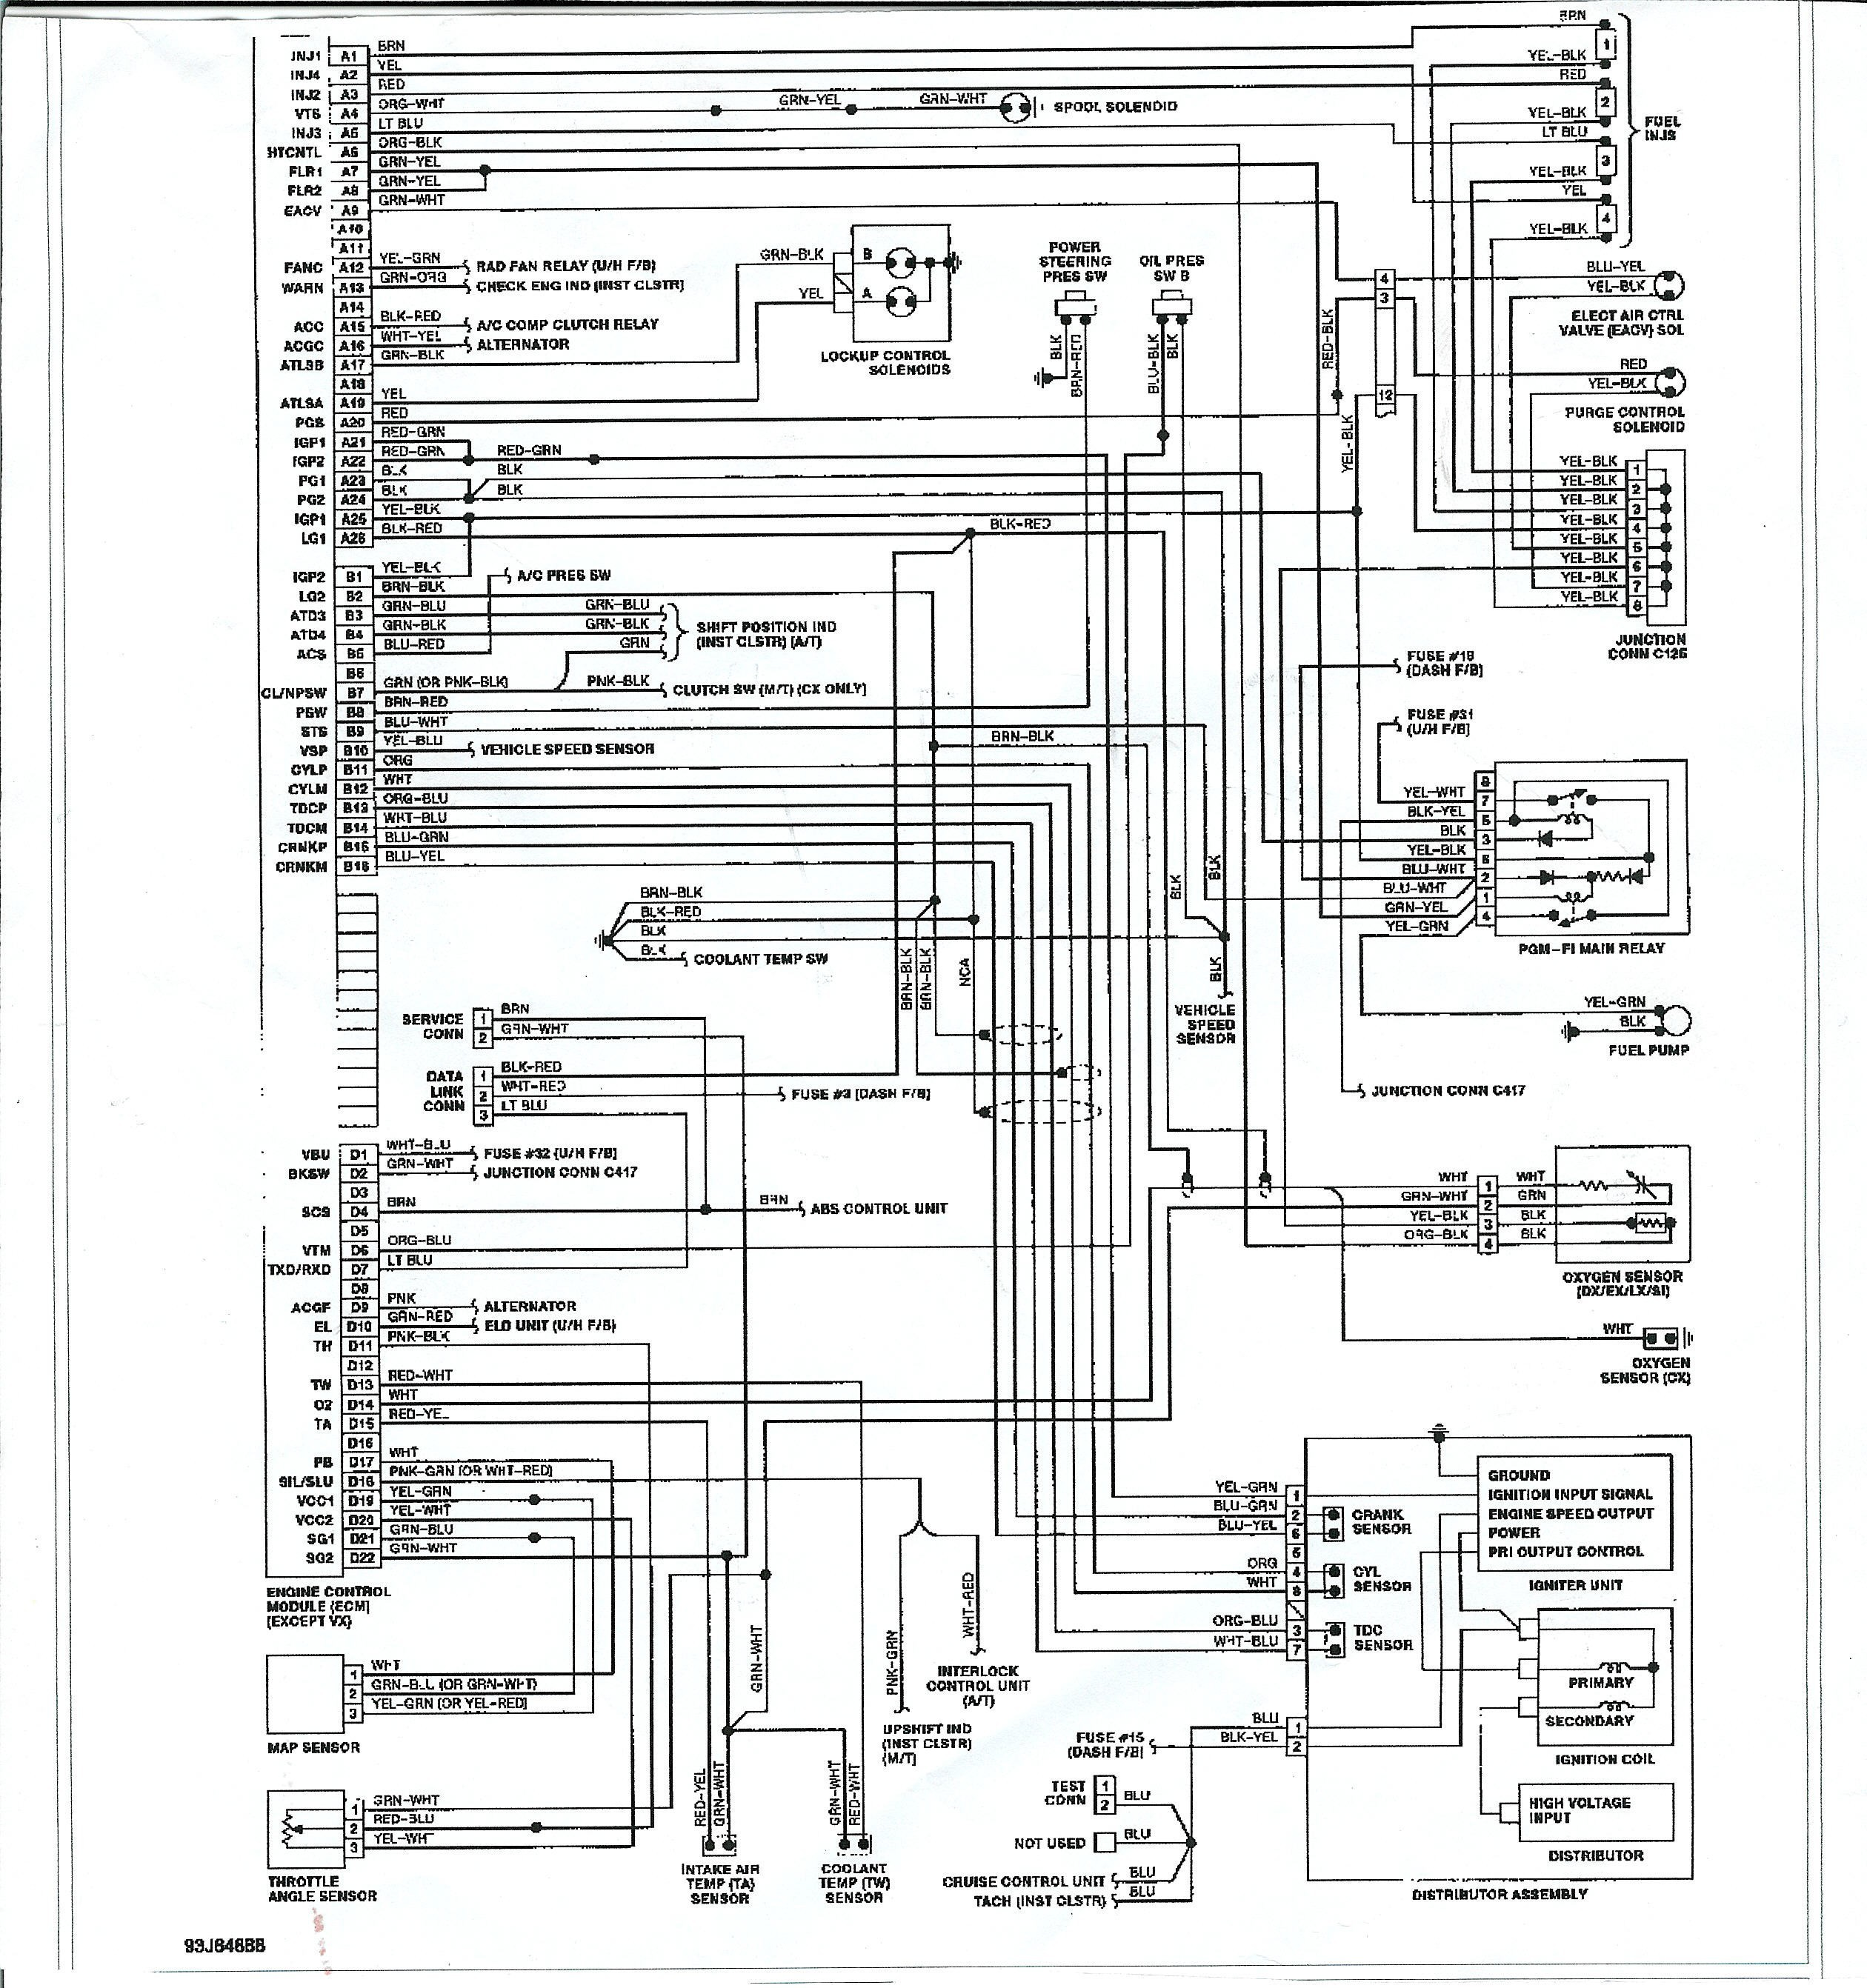 Honda Accord Wiring Diagram 2004 - amazing wiring diagram ... on